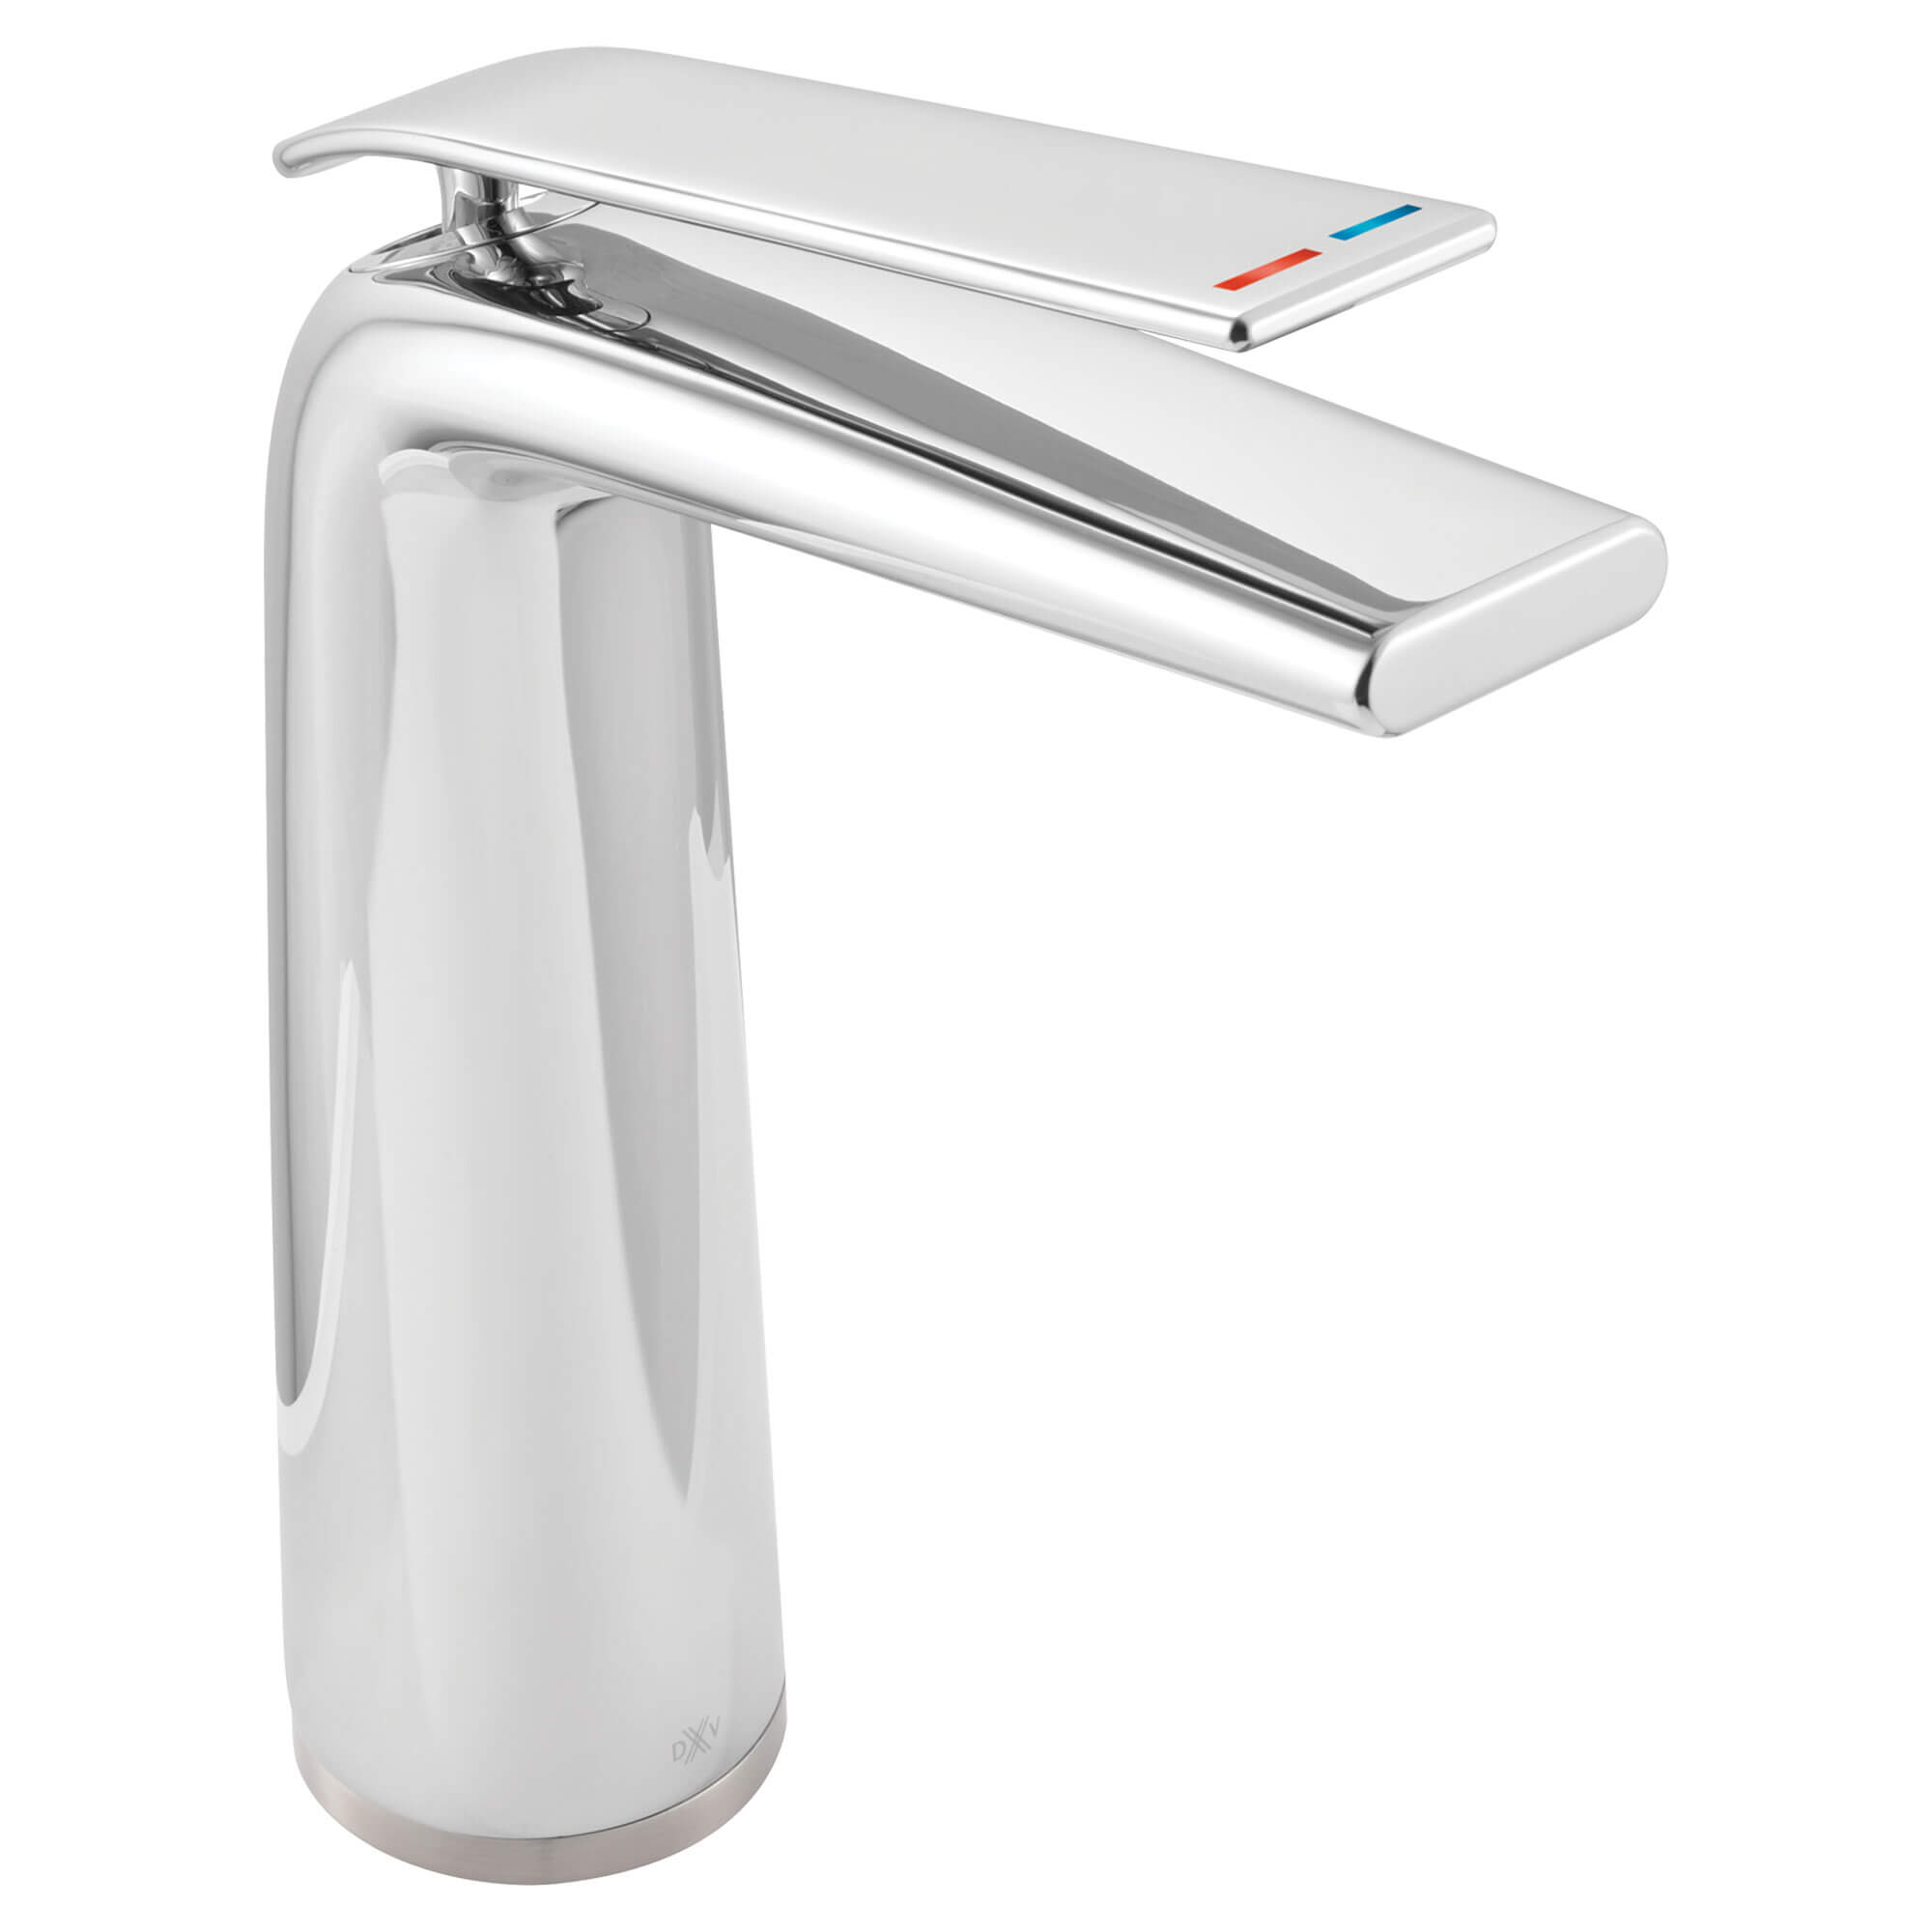 DXV Modulus Vessel Faucet - Projects Model